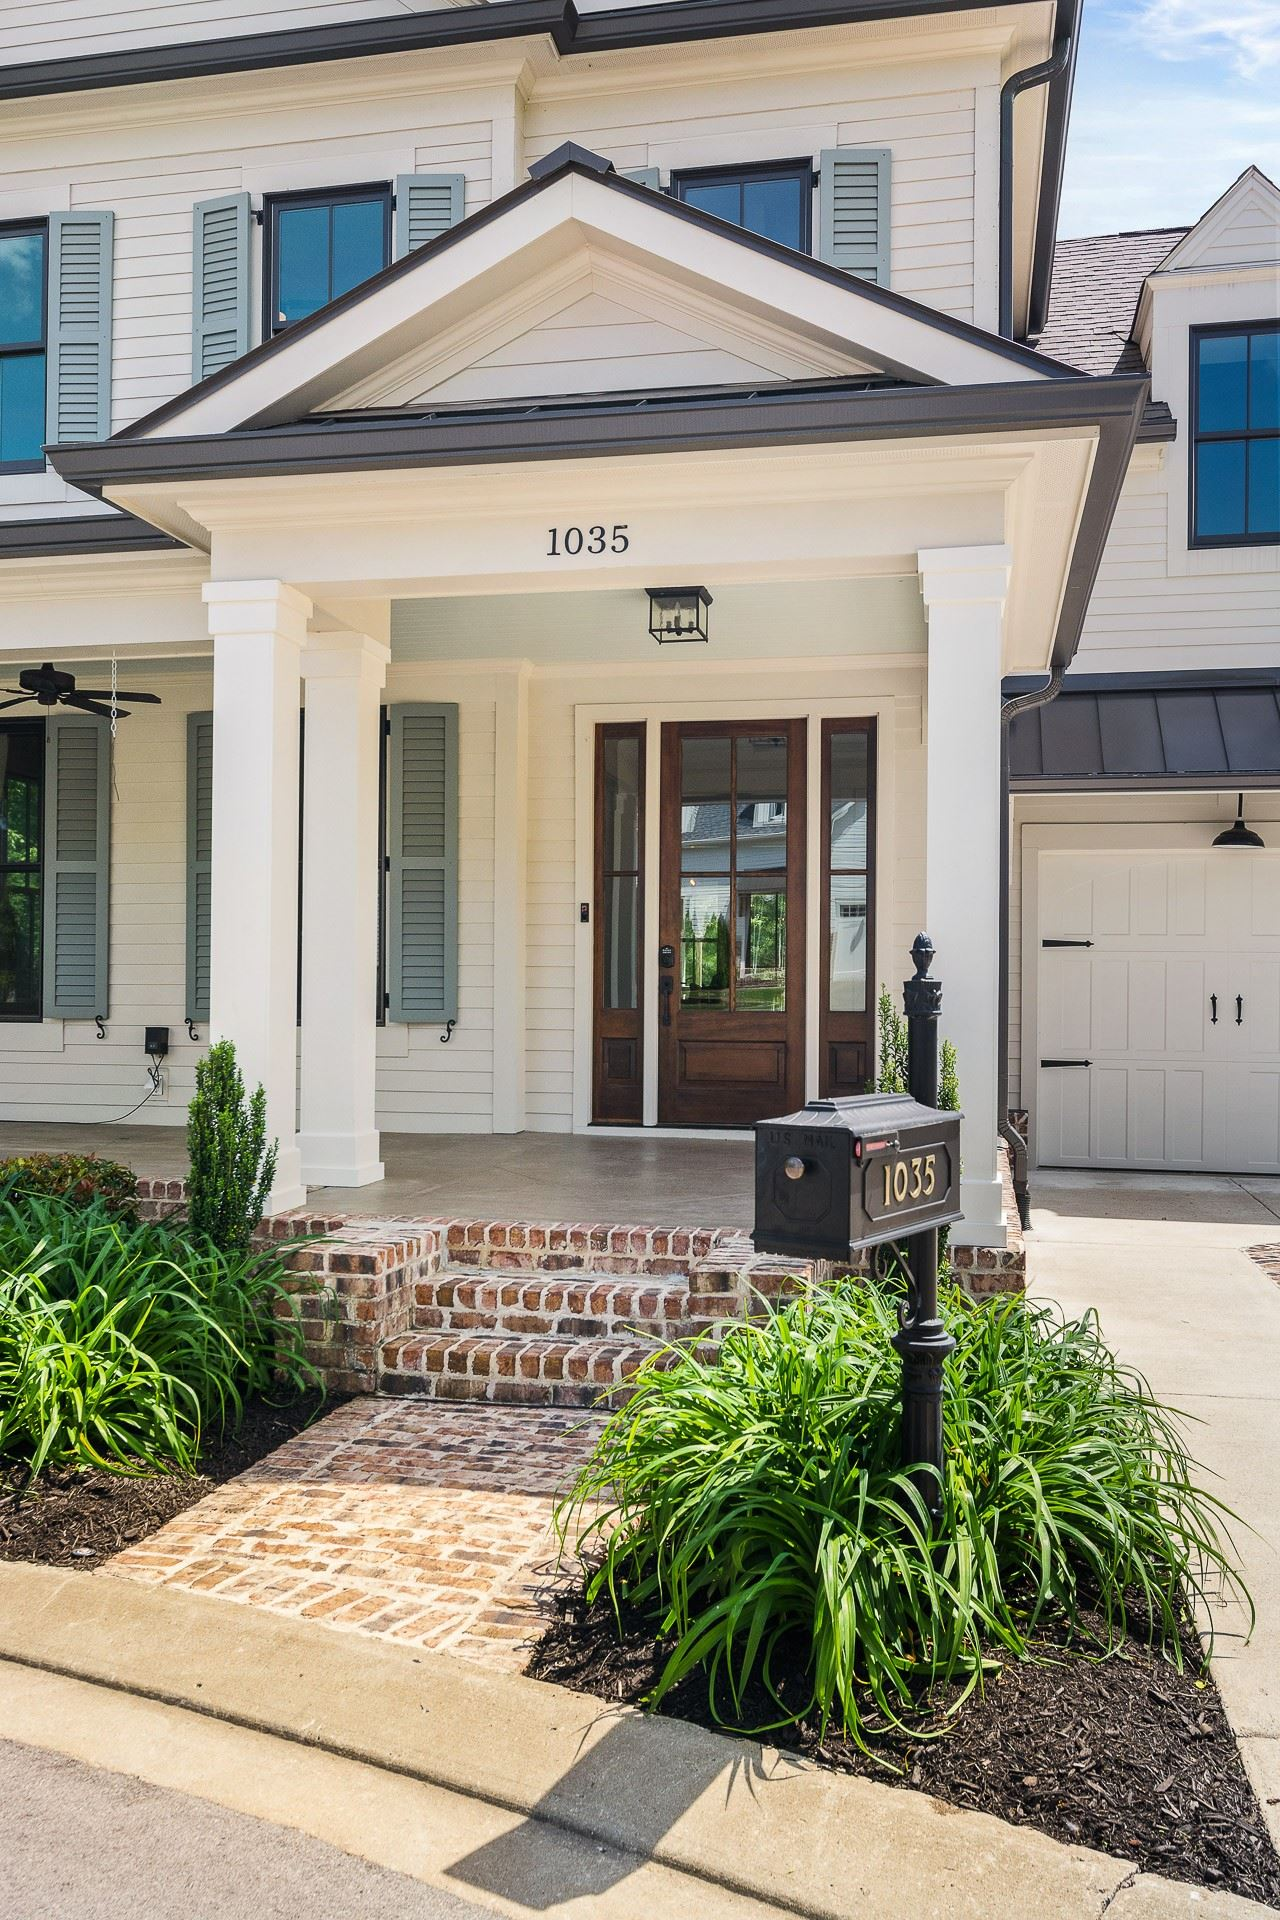 Photo of 1035 Benelli Park Ct, Franklin, TN 37064 (MLS # 2151220)